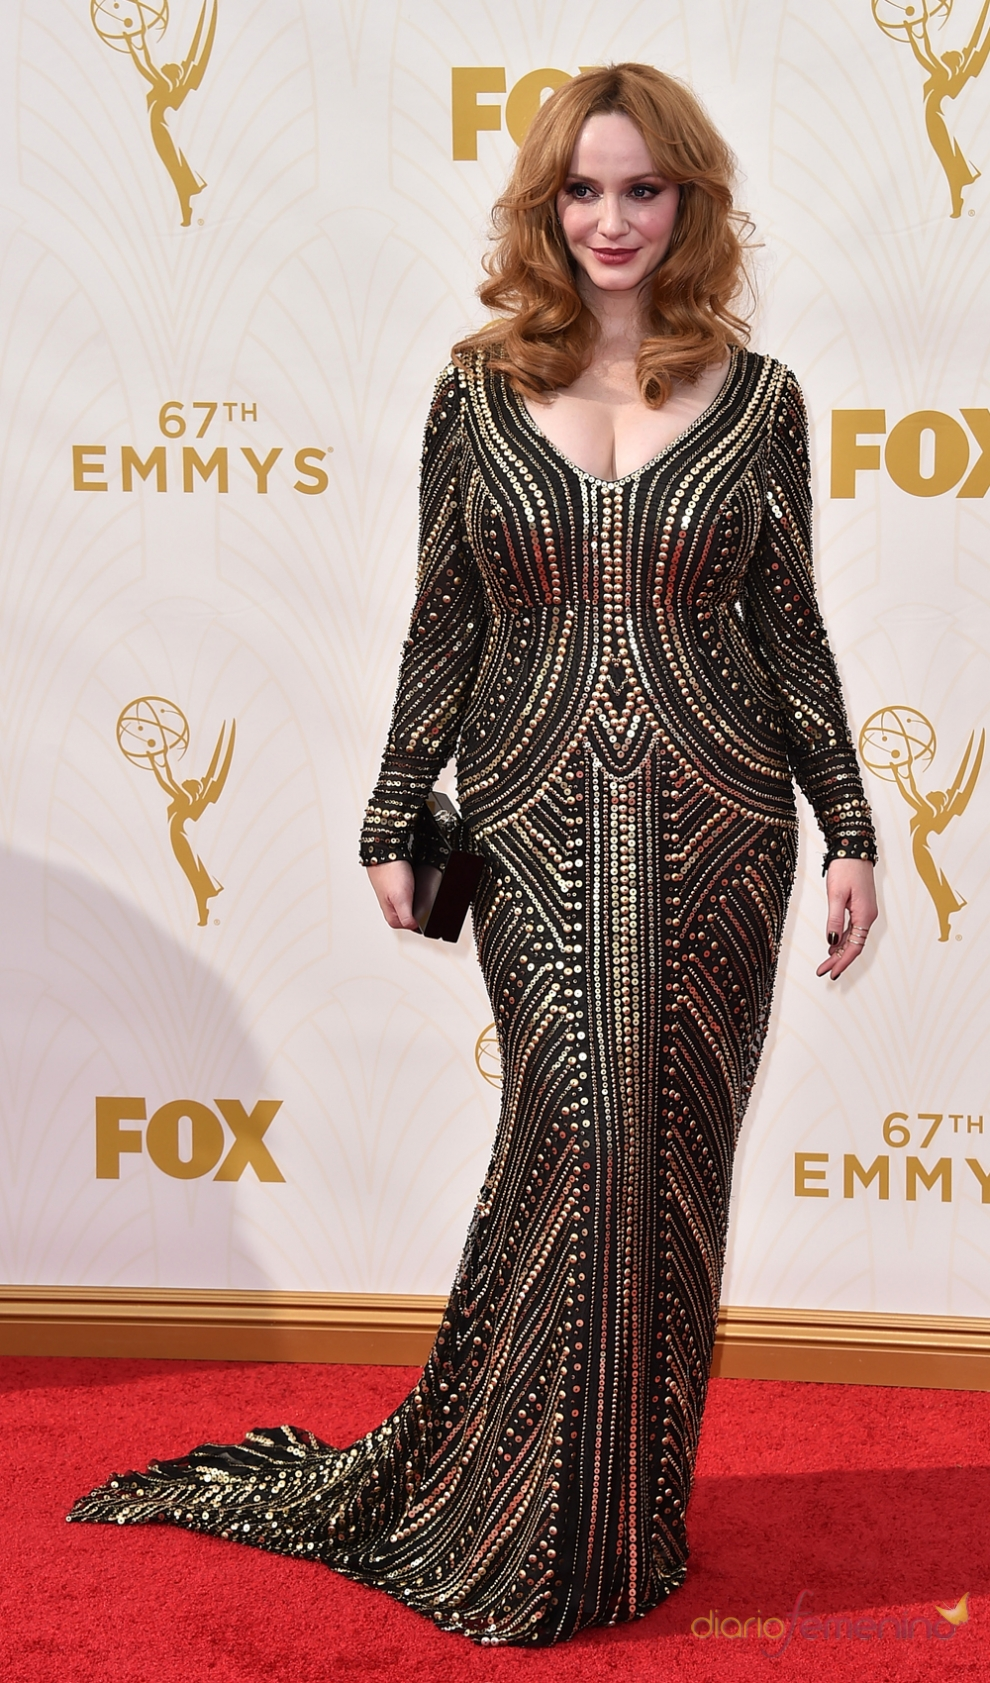 Emmys 2015: la actriz de Mad Men, Christina Hendricks